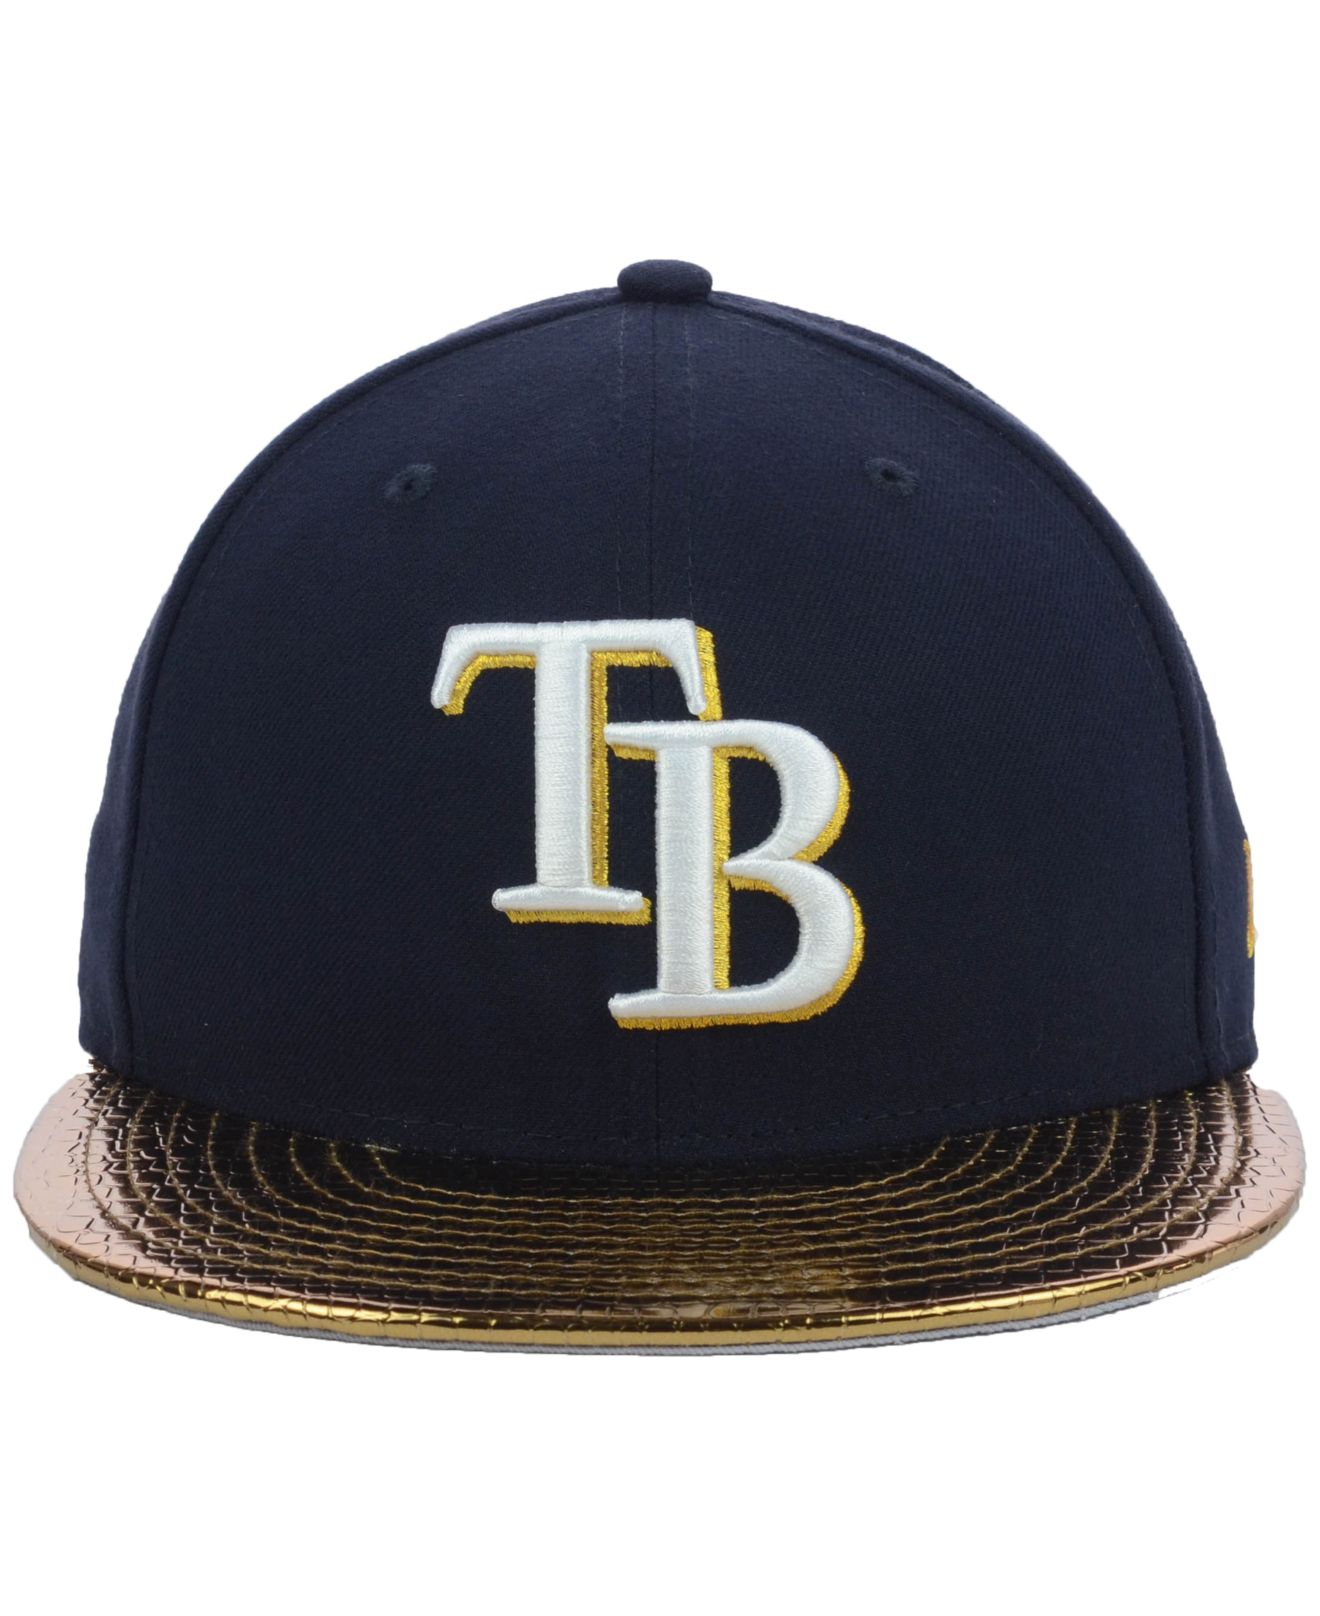 super popular 6087e b408a ... australia lyst ktz tampa bay rays mlb metallic slither 59fifty cap in  blue 6bf94 2c699